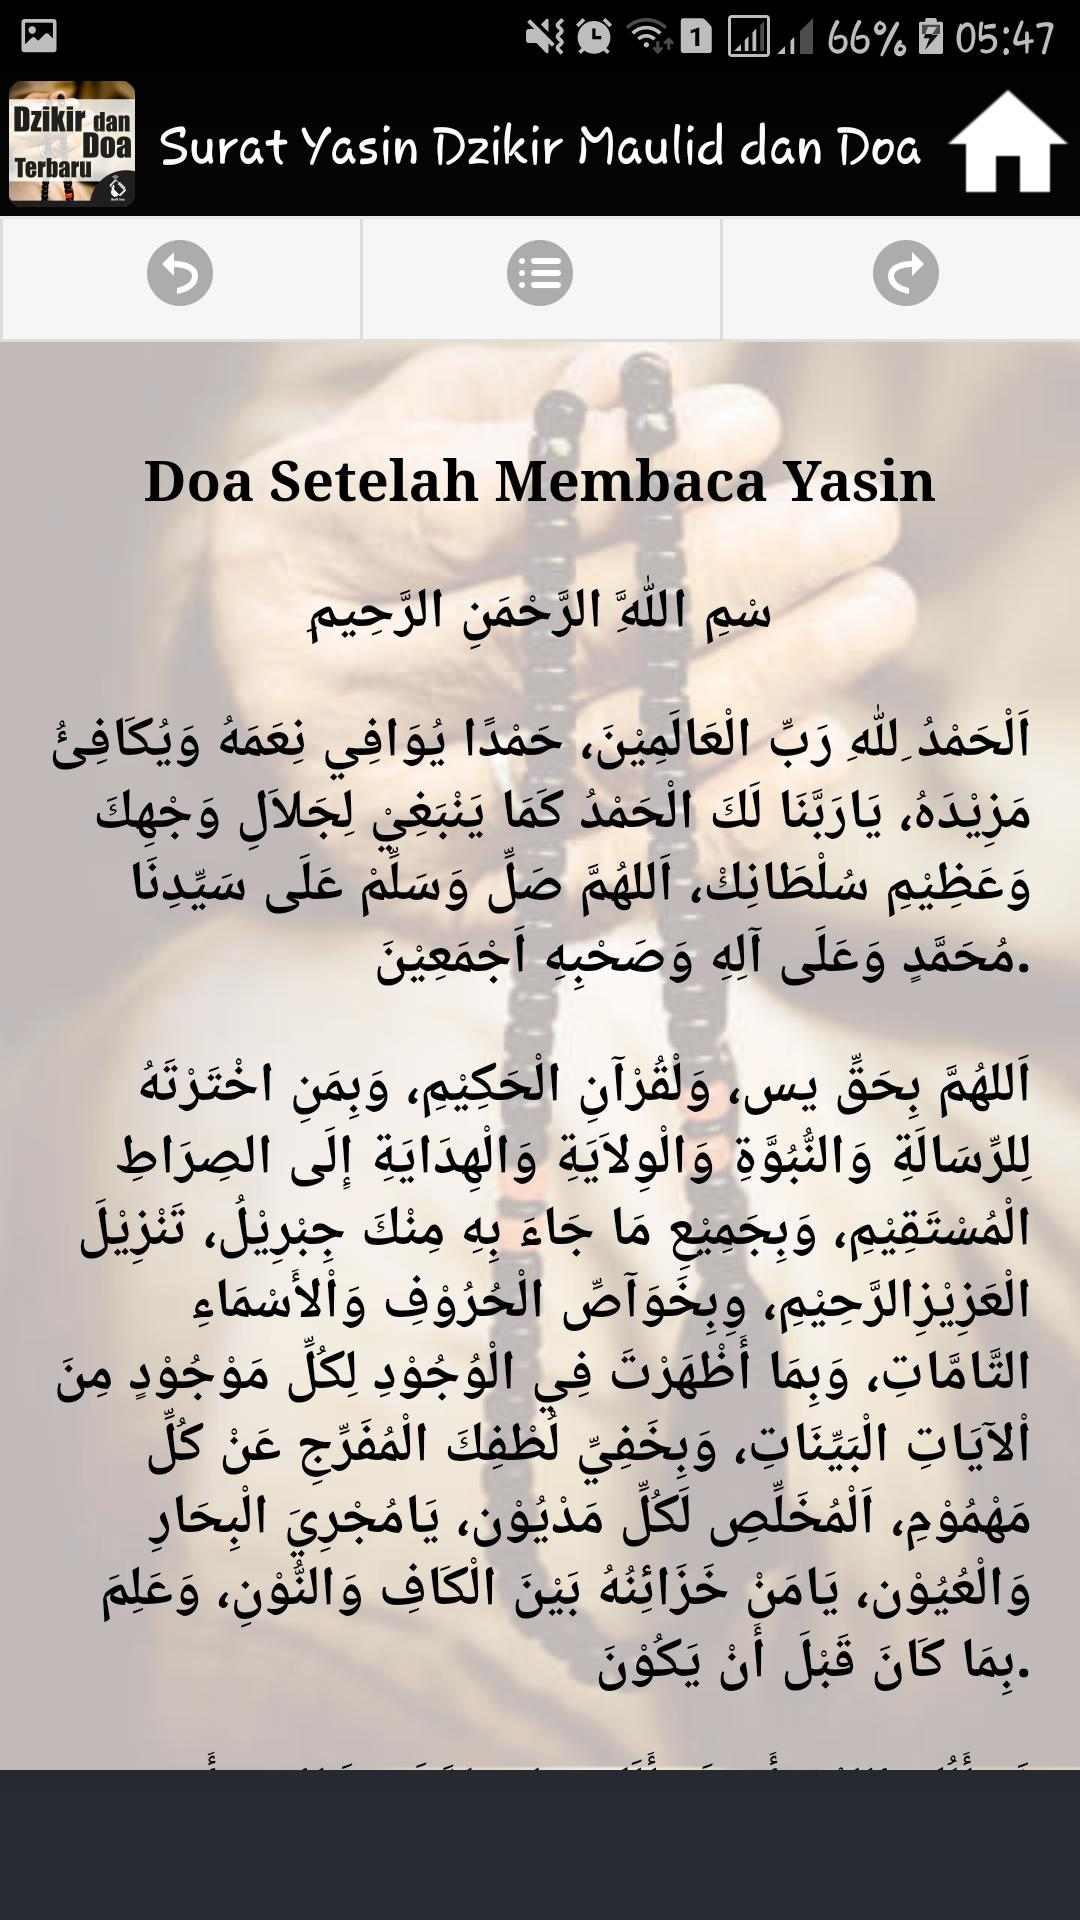 Surat Yasin Dzikir Maulid Dan Doa For Android Apk Download